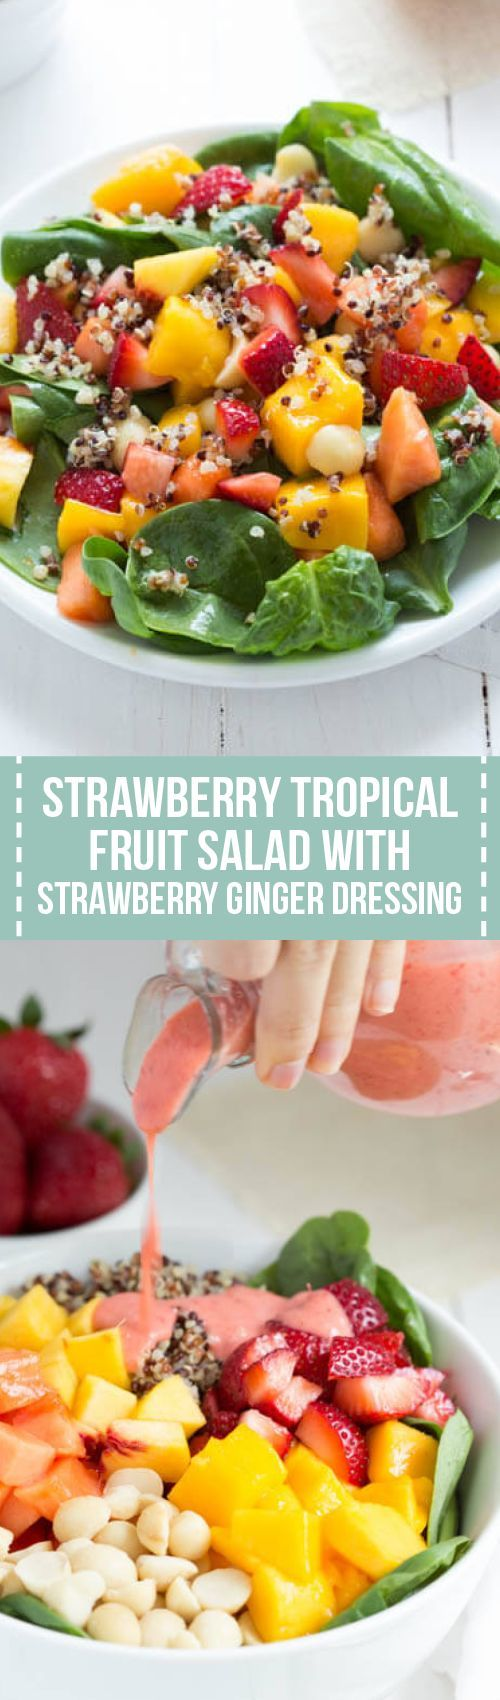 Strawberry Tropical Fruit Salad with Strawberry-Ginger Dressing is a colorful, flavorful and delicious salad! #EatTheRainbow and try this salad with fresh spinach, strawberries, mango, papaya, nectarines, quinoa and macadamia nuts!